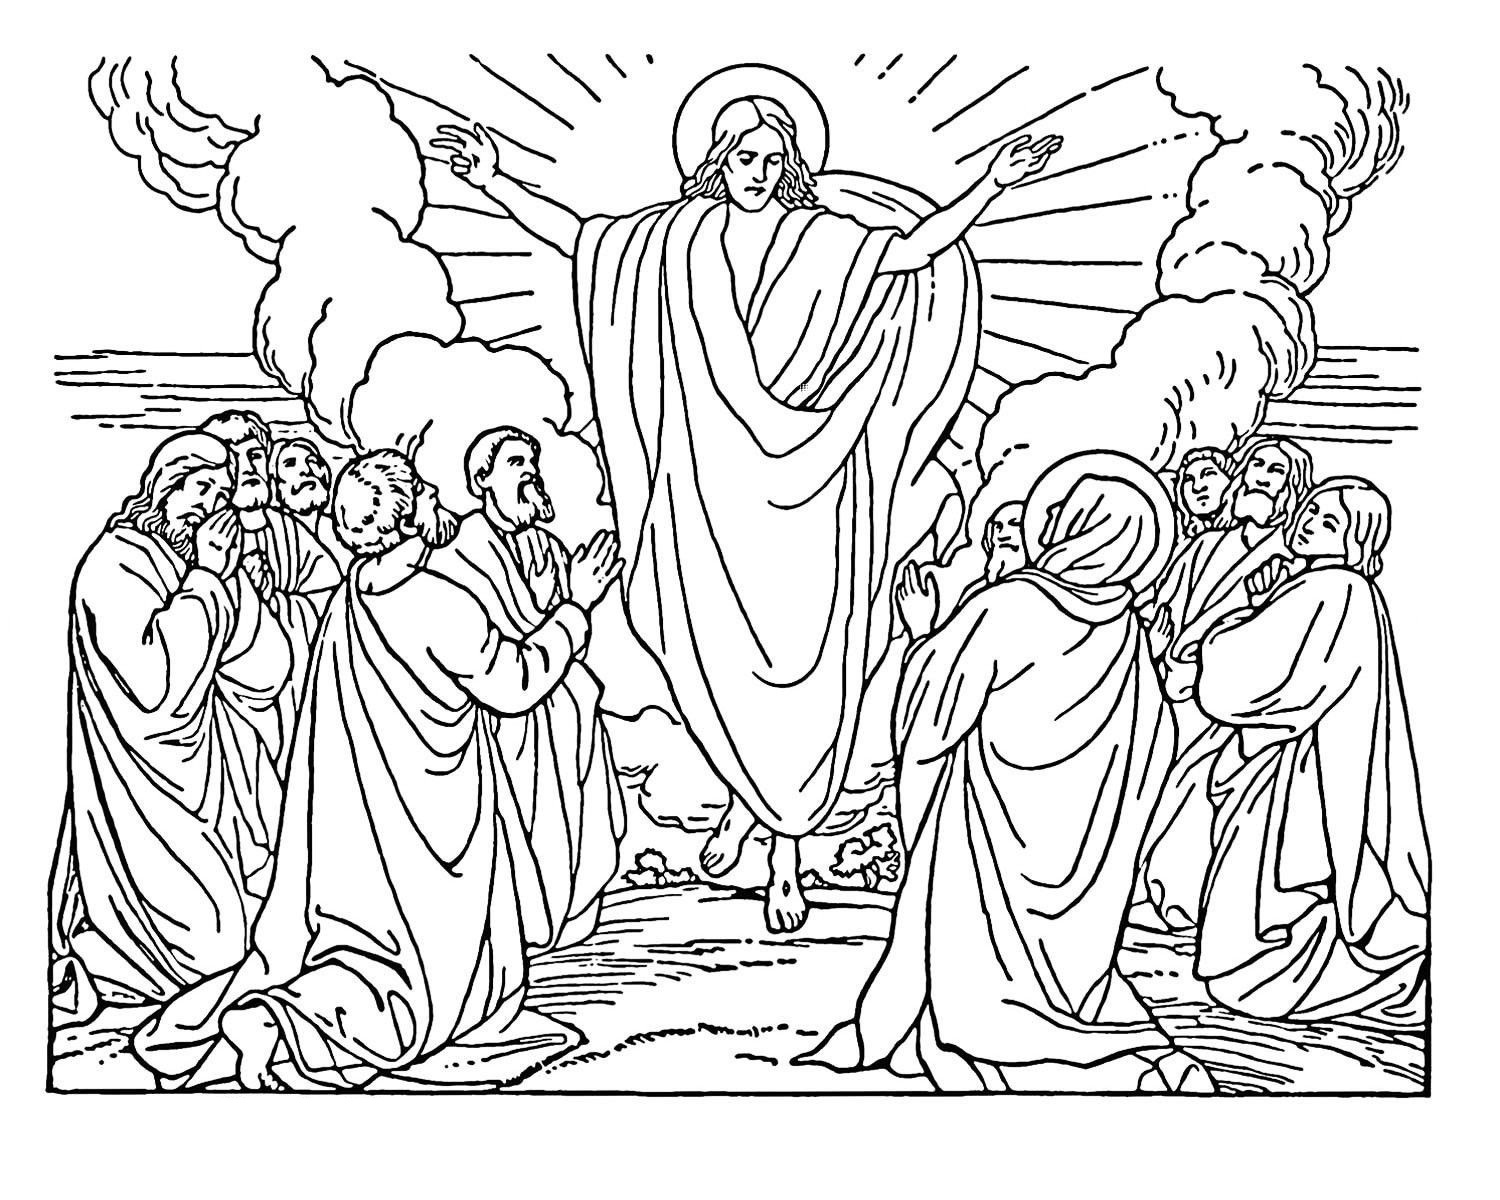 free printable bible coloring pages for children free printable bible coloring pages for kids for bible printable children coloring free pages